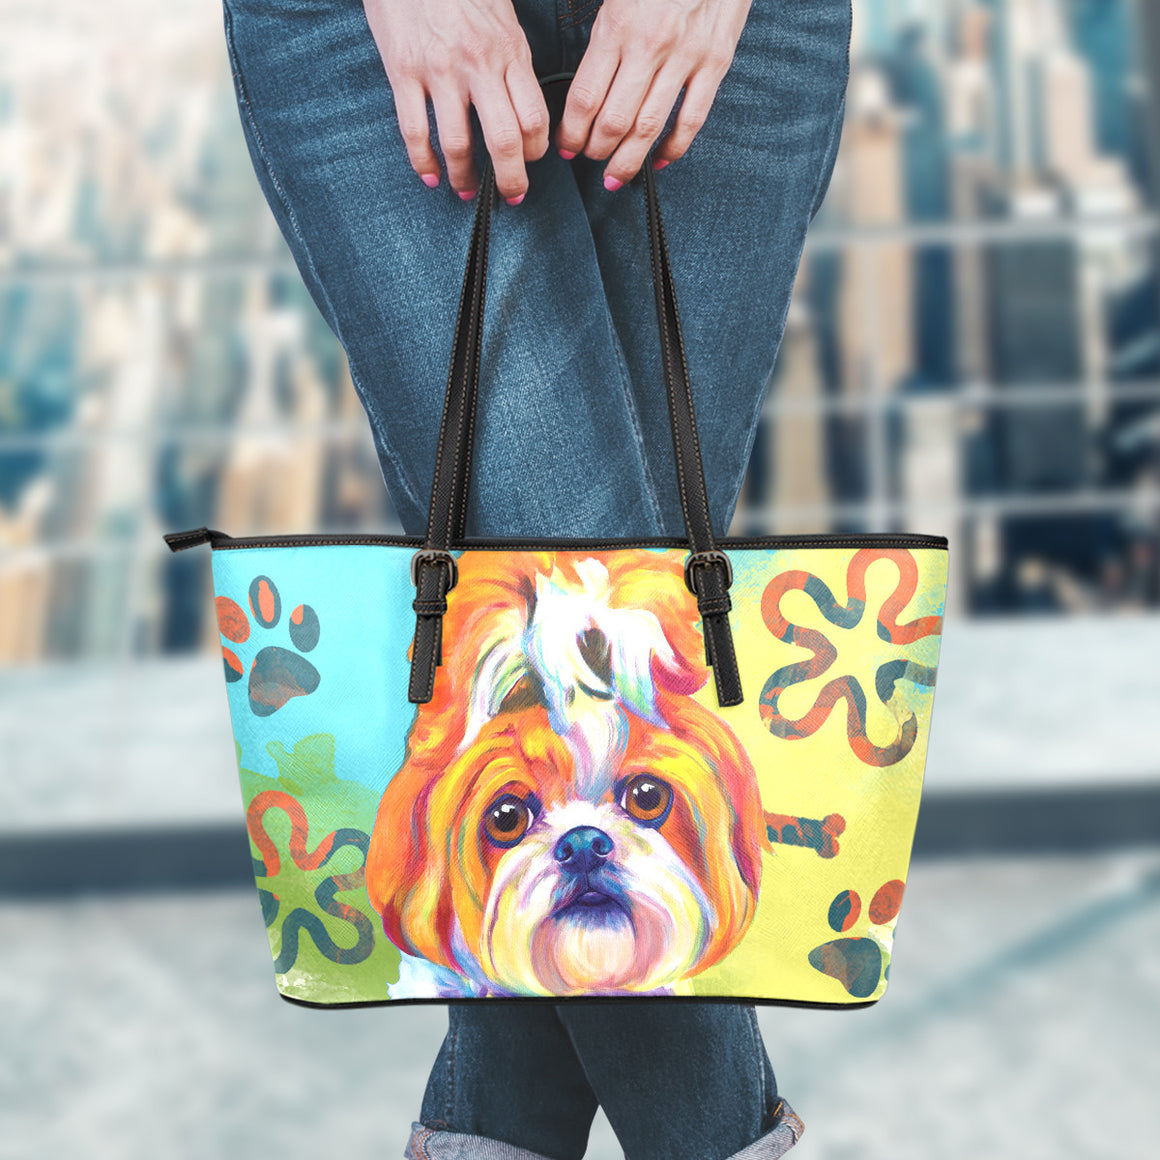 Shih Tzu Leather Totes (Small)